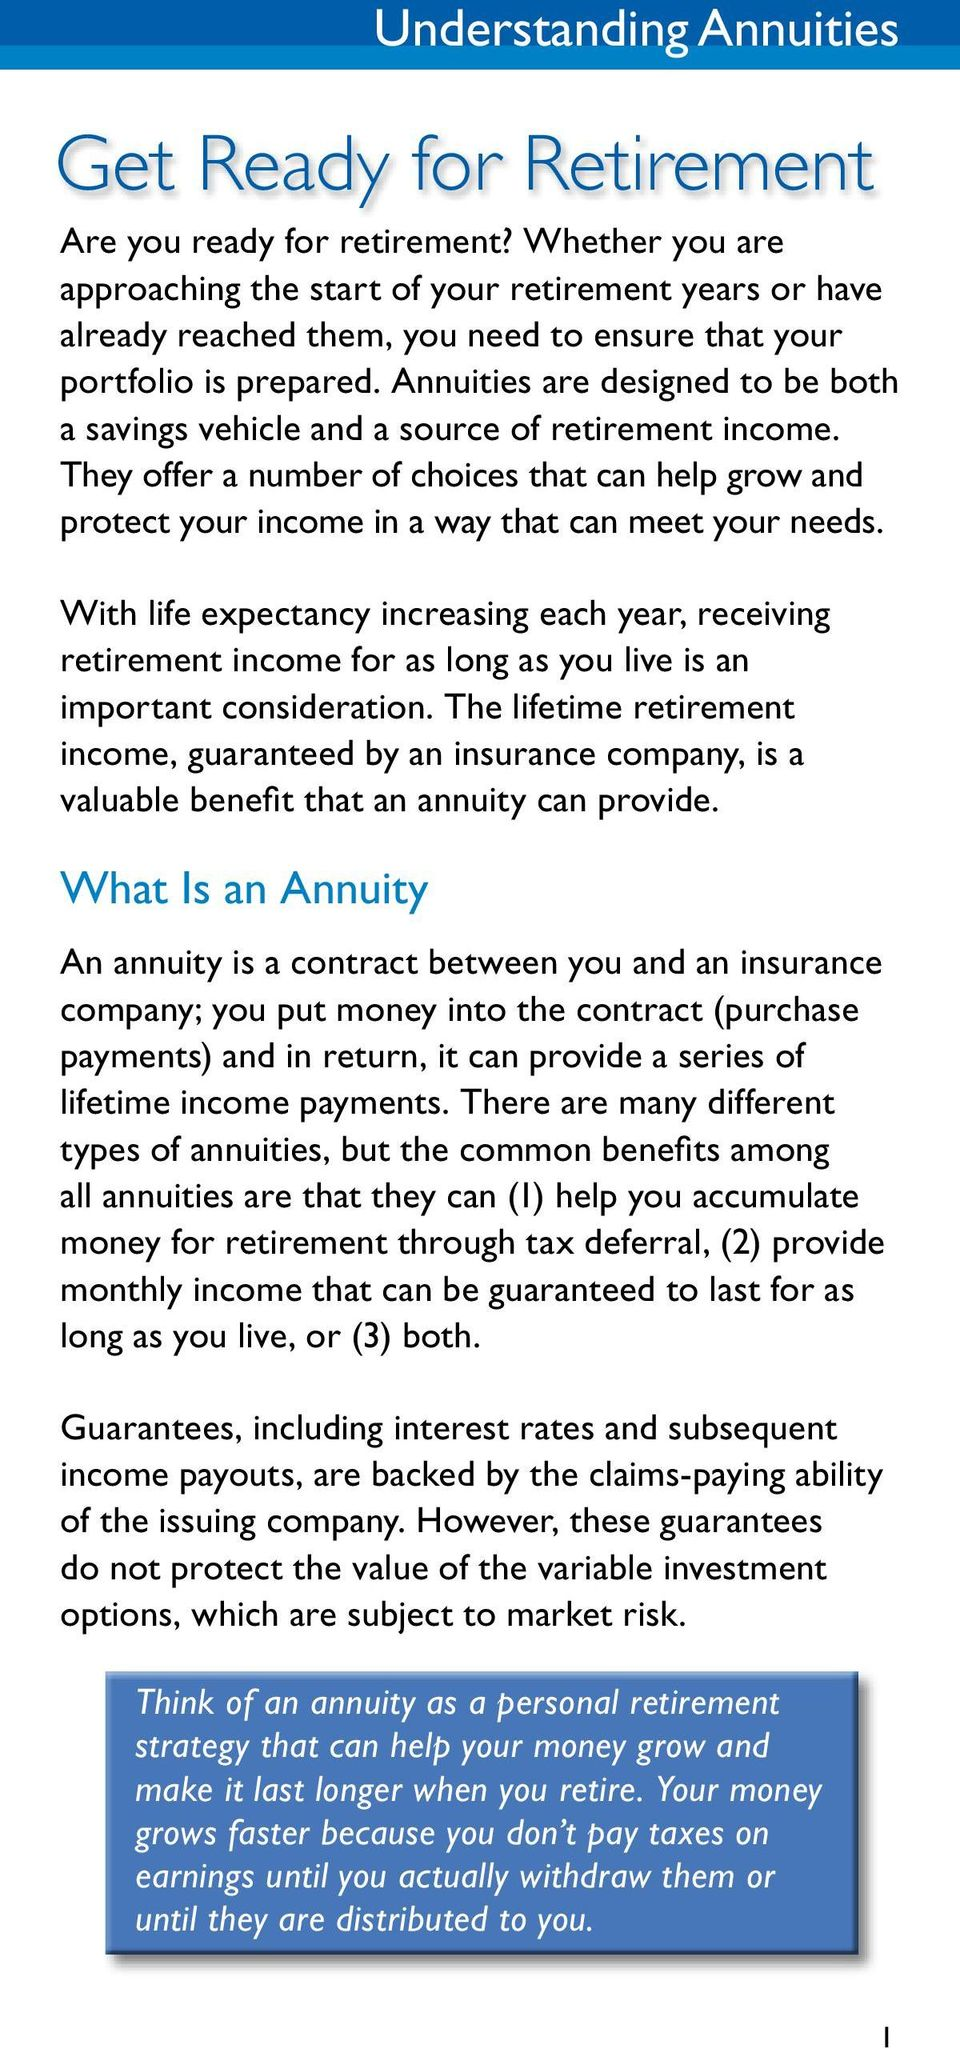 Annuities are designed to be both a savings vehicle and a source of retirement income. They offer a number of choices that can help grow and protect your income in a way that can meet your needs.